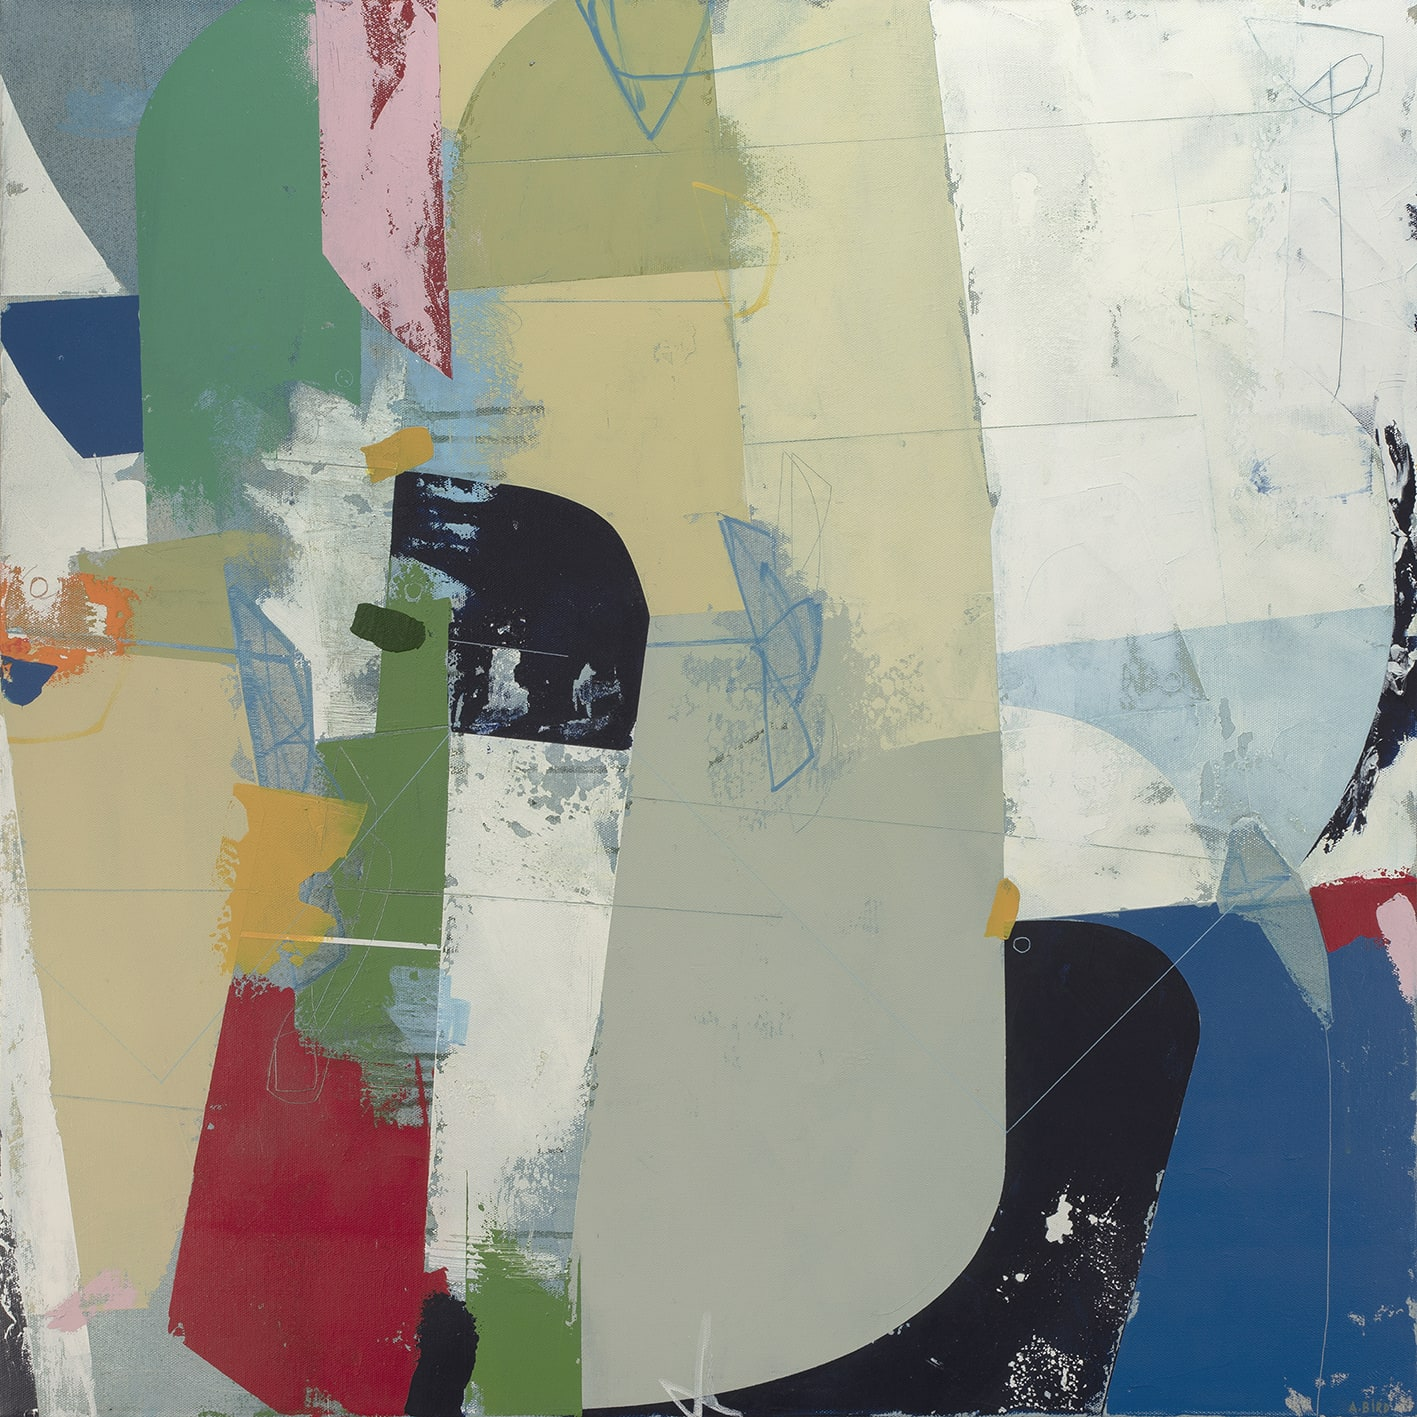 """<span class=""""link fancybox-details-link""""><a href=""""/store/artworks/6203-andrew-bird-sidewalking-2019/"""">View Detail Page</a></span><div class=""""artist""""><strong>Andrew Bird</strong></div> b. 1969 <div class=""""title""""><em>Sidewalking</em>, 2019</div> <div class=""""signed_and_dated"""">signed, titled and dated on reverse</div> <div class=""""medium"""">acrylic on canvas</div> <div class=""""dimensions"""">76 x w 76 cm</div><div class=""""price"""">£2,500.00</div><div class=""""copyright_line"""">Own Art: £ 250 x 10 Months, 0% APR</div>"""